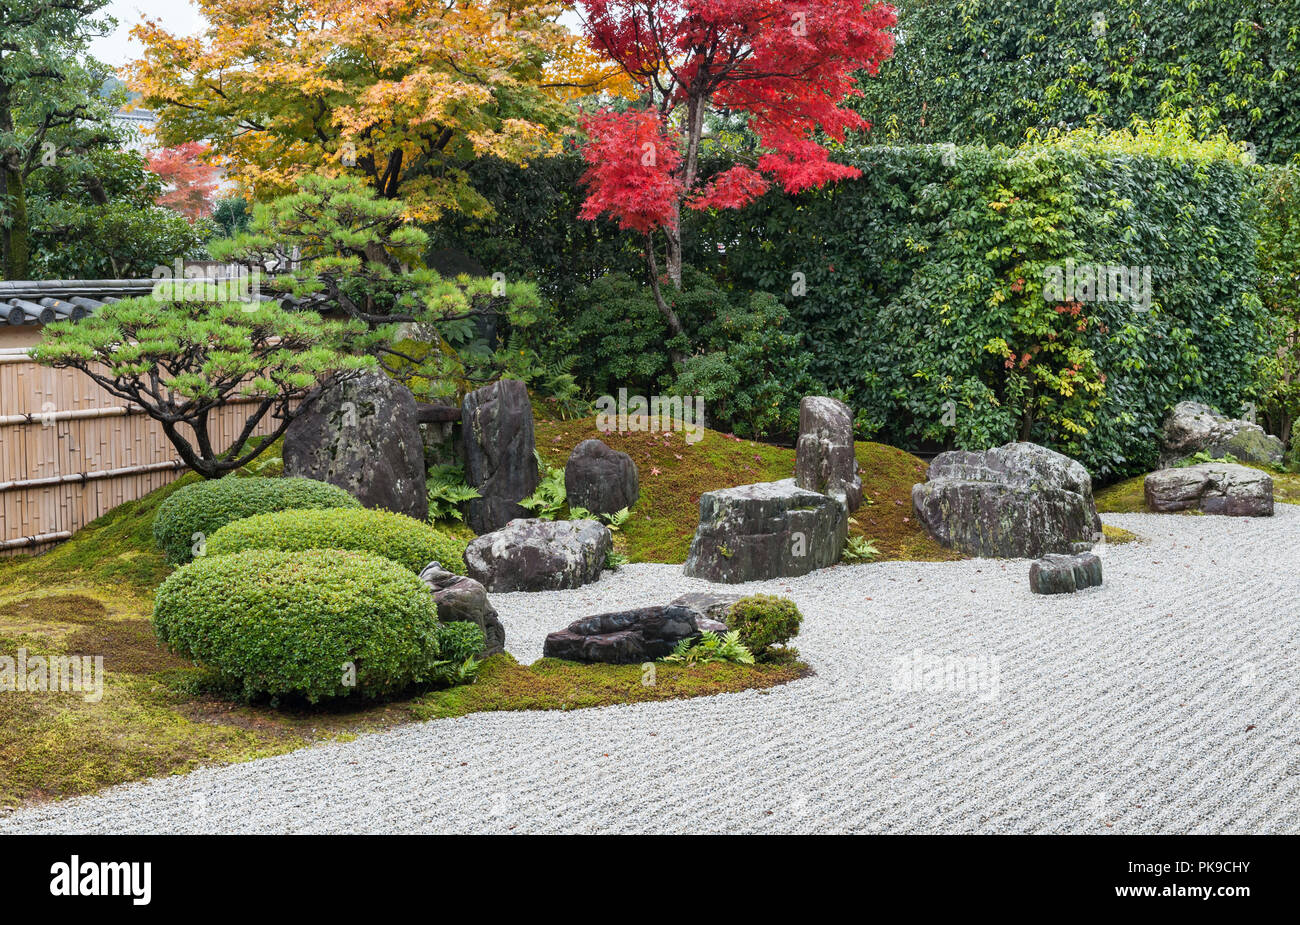 Daitoku-ji, Kyoto, Japan. The gardens of Korin-in zen temple, founded in 1520. The garden represents an idealised Chinese landscape - Stock Image